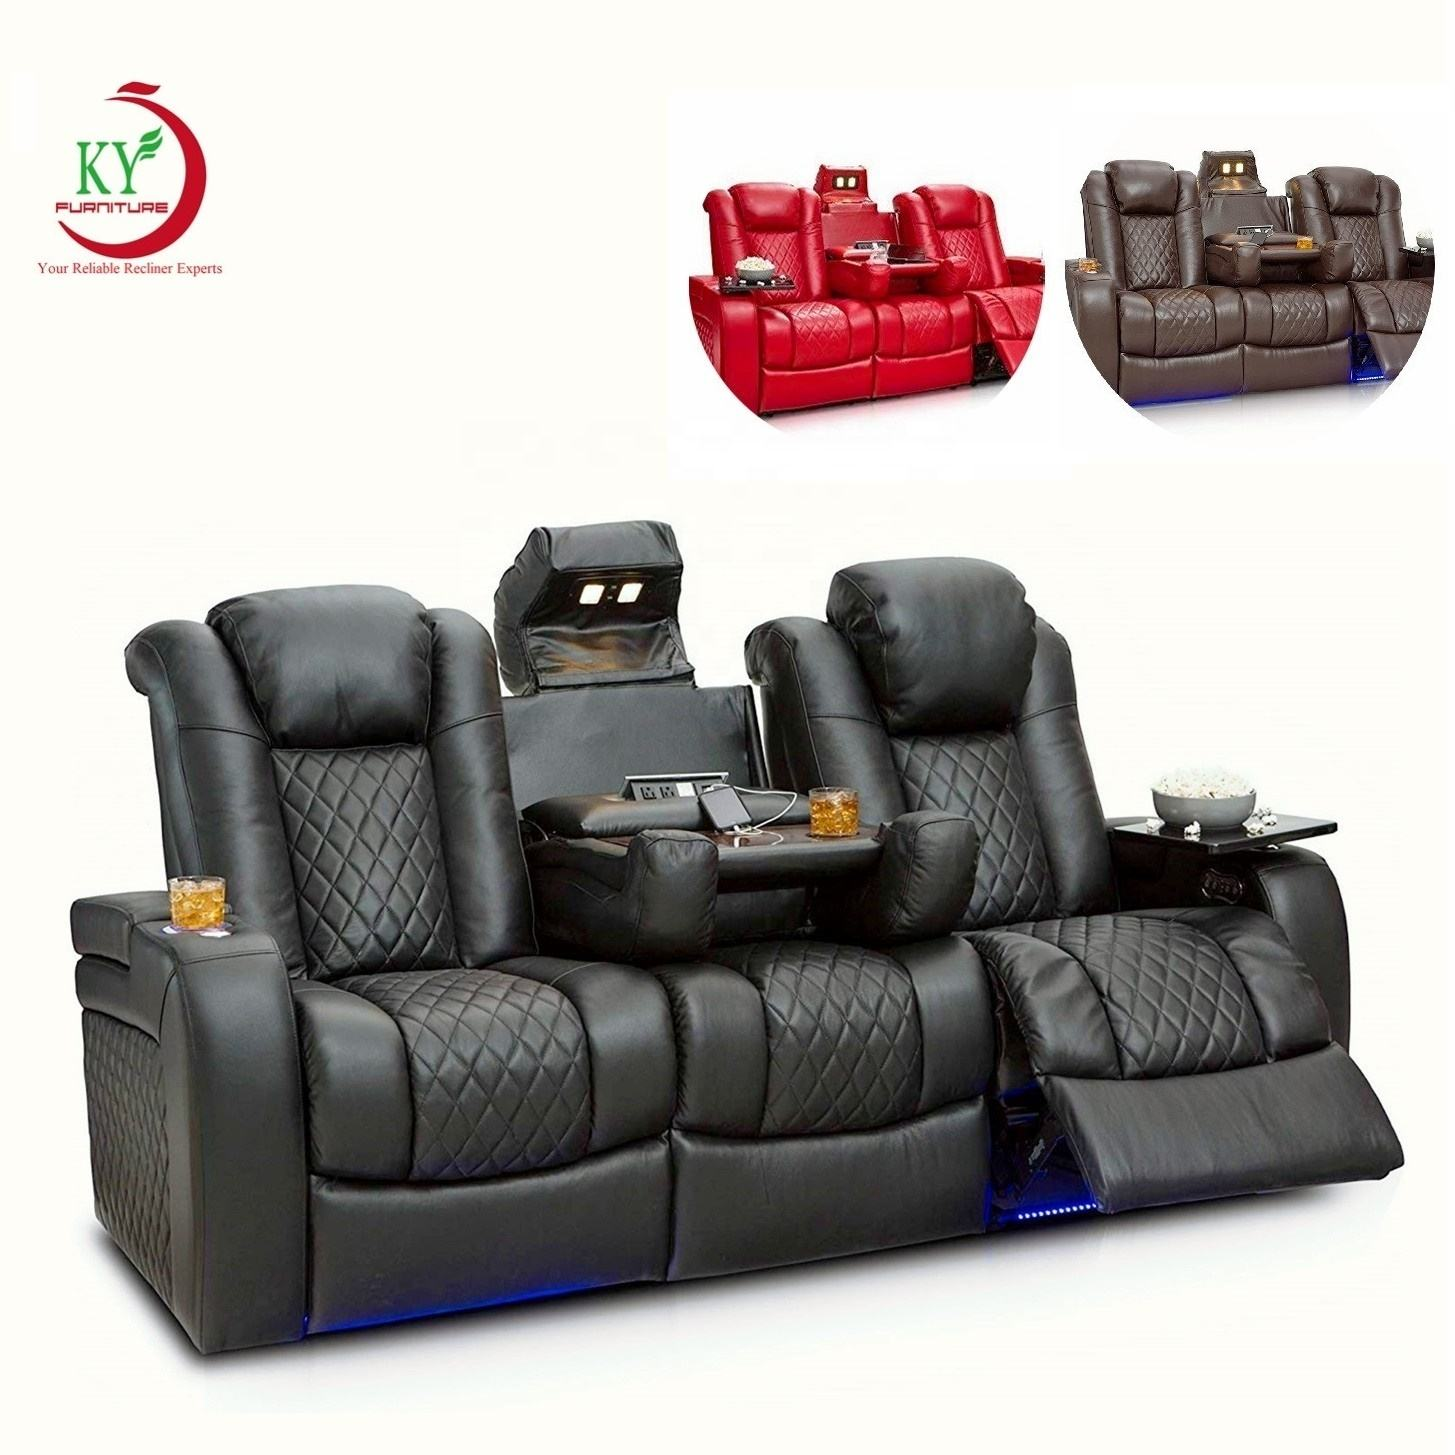 JKY Furniture Comfortable Luxury Sectional Electric Luxury Home VIP Movie Theatre Cinema Theating Theater Recliner Sofa